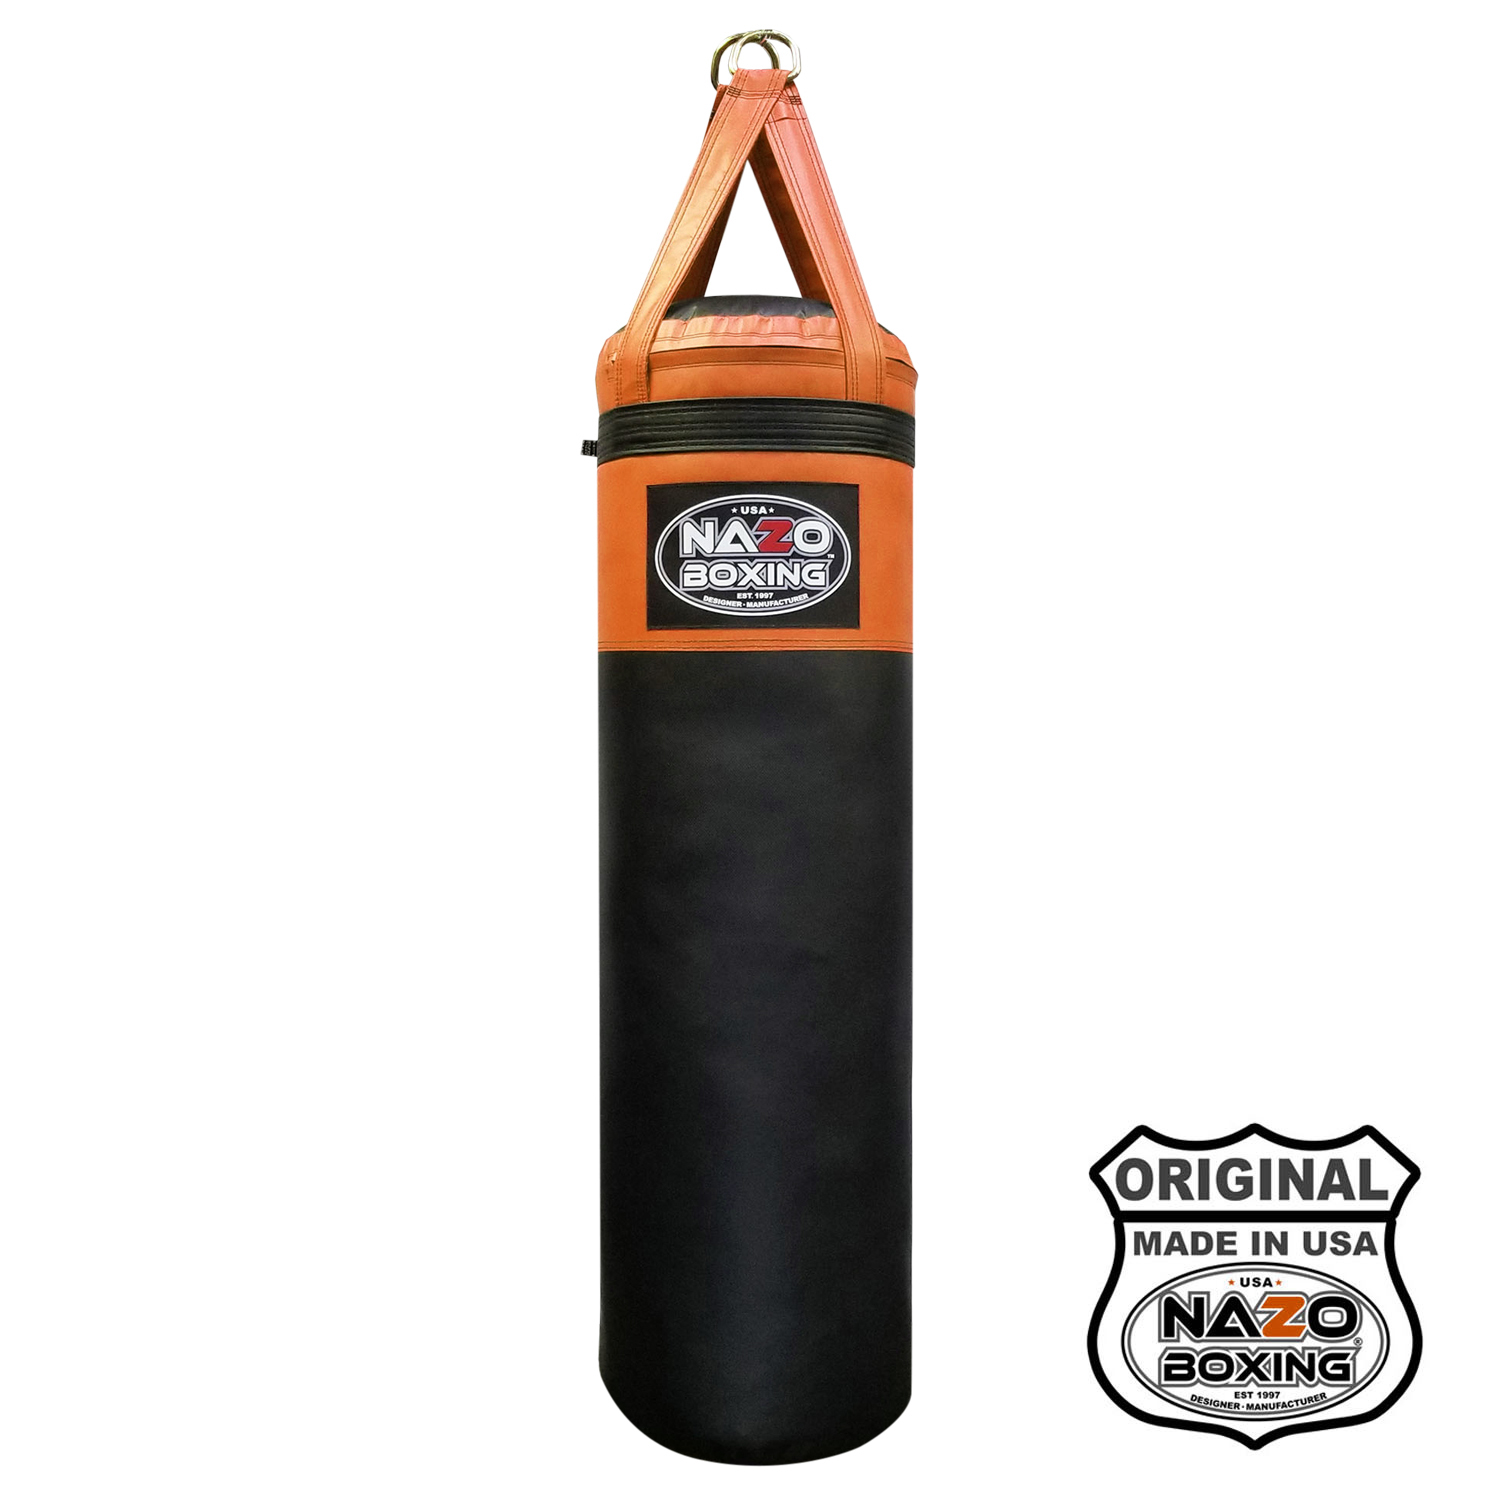 4 FT Punching bag made in USA